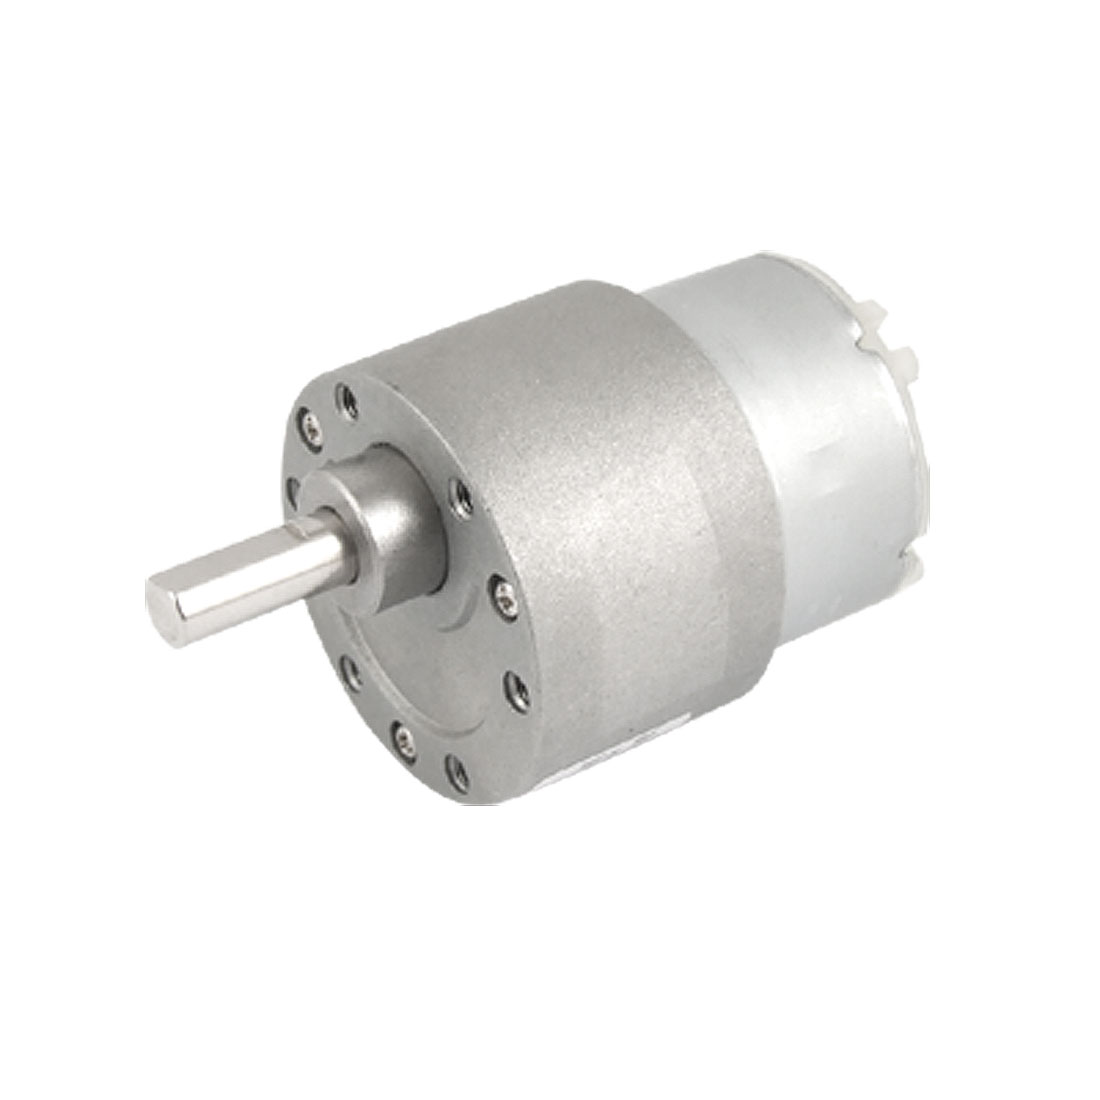 12V DC 0.5A 120RPM High Torque Gear Box Electric Motor 37mm